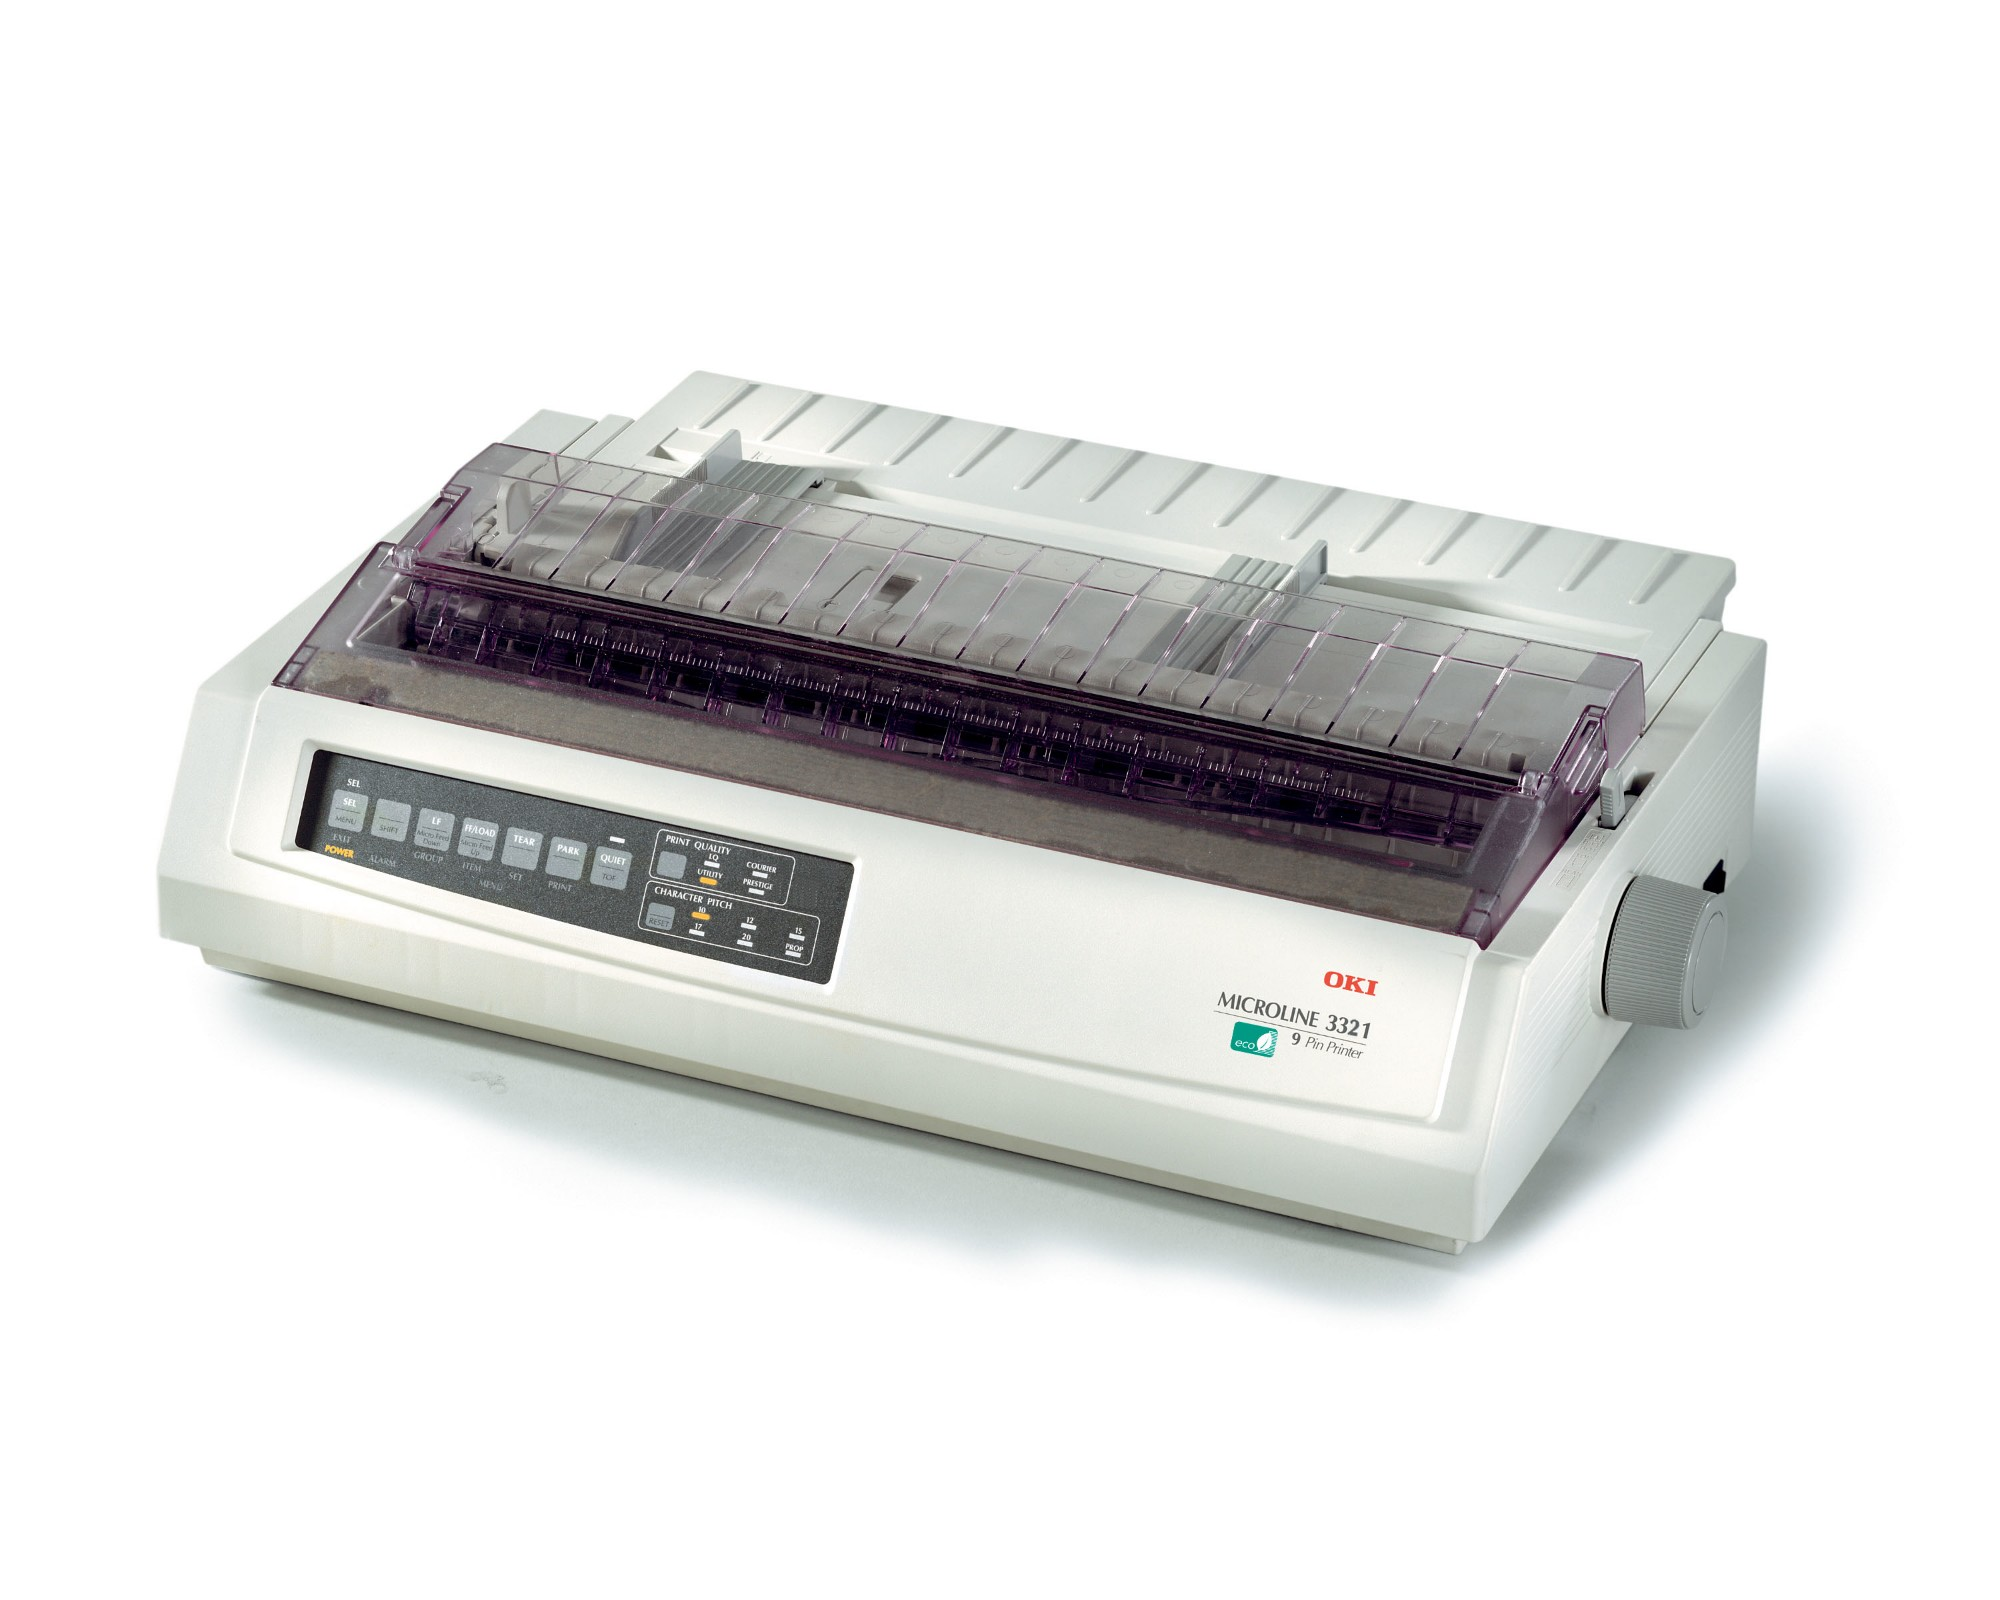 OKI ML3321eco dot matrix printer 240 x 216 DPI 435 cps